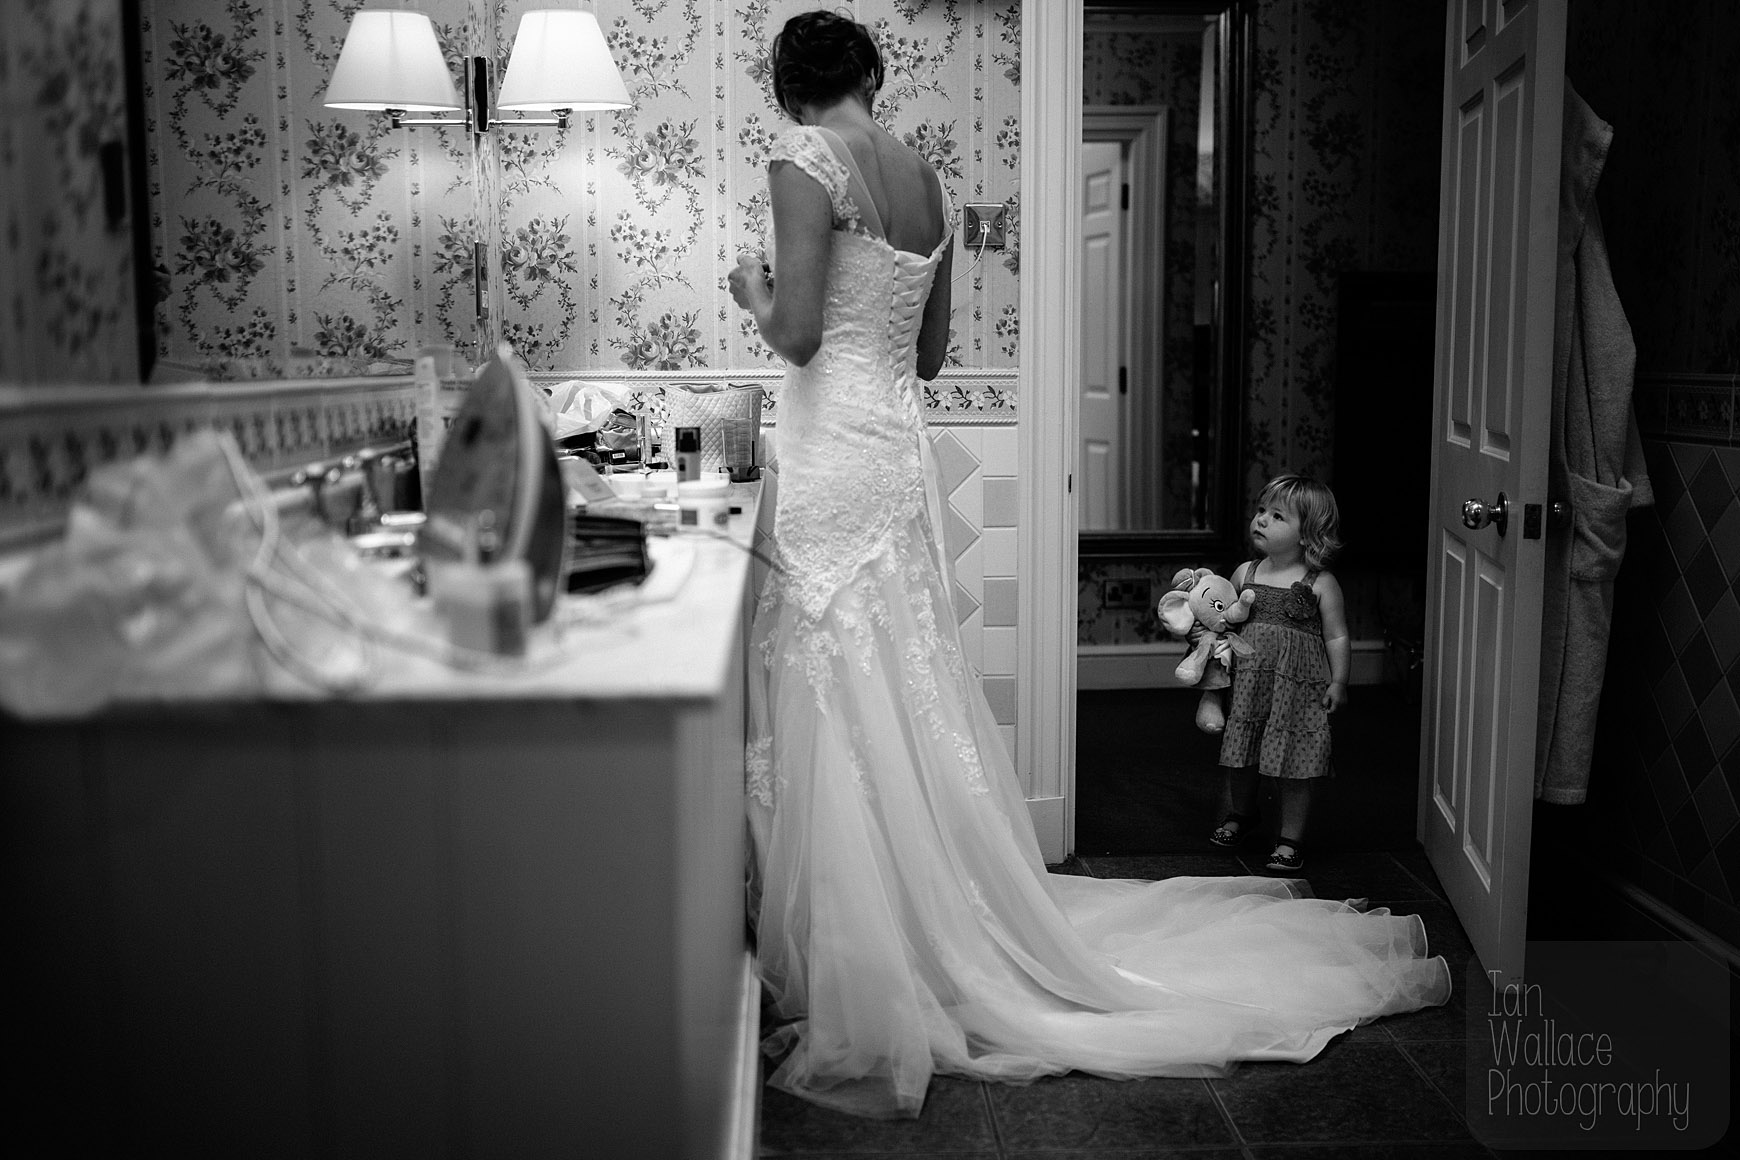 A little girl watches on as the bride finishes getting ready